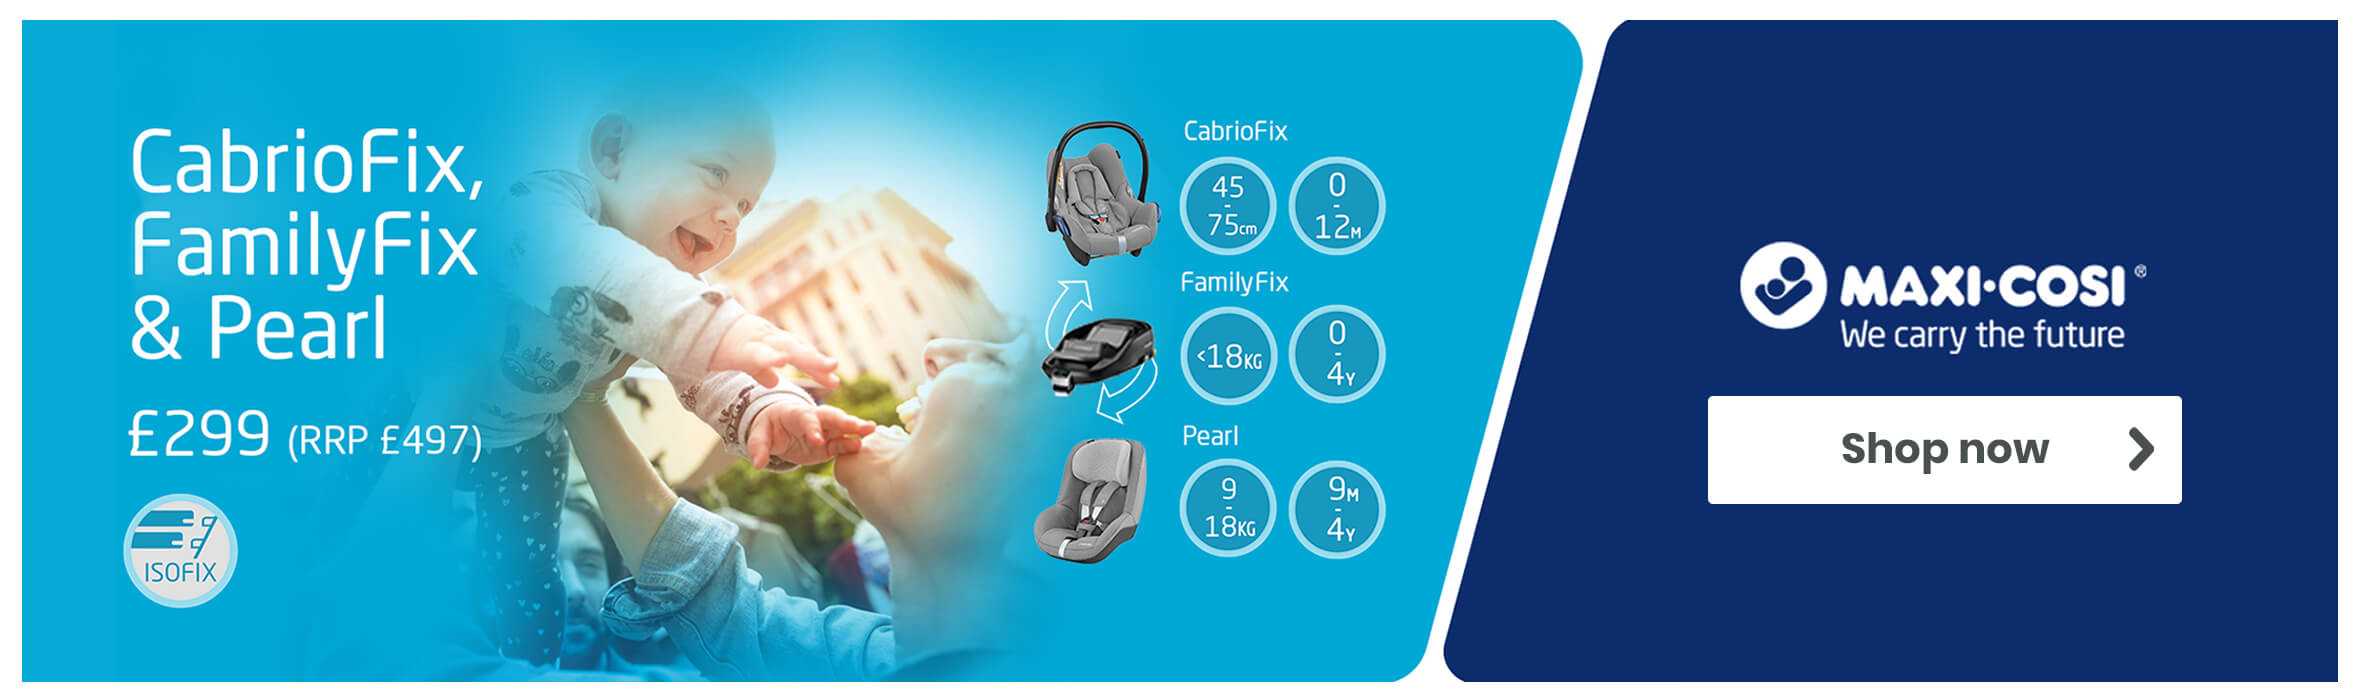 CabrioFix, FamilyFix & Pearl Bundle Now £299